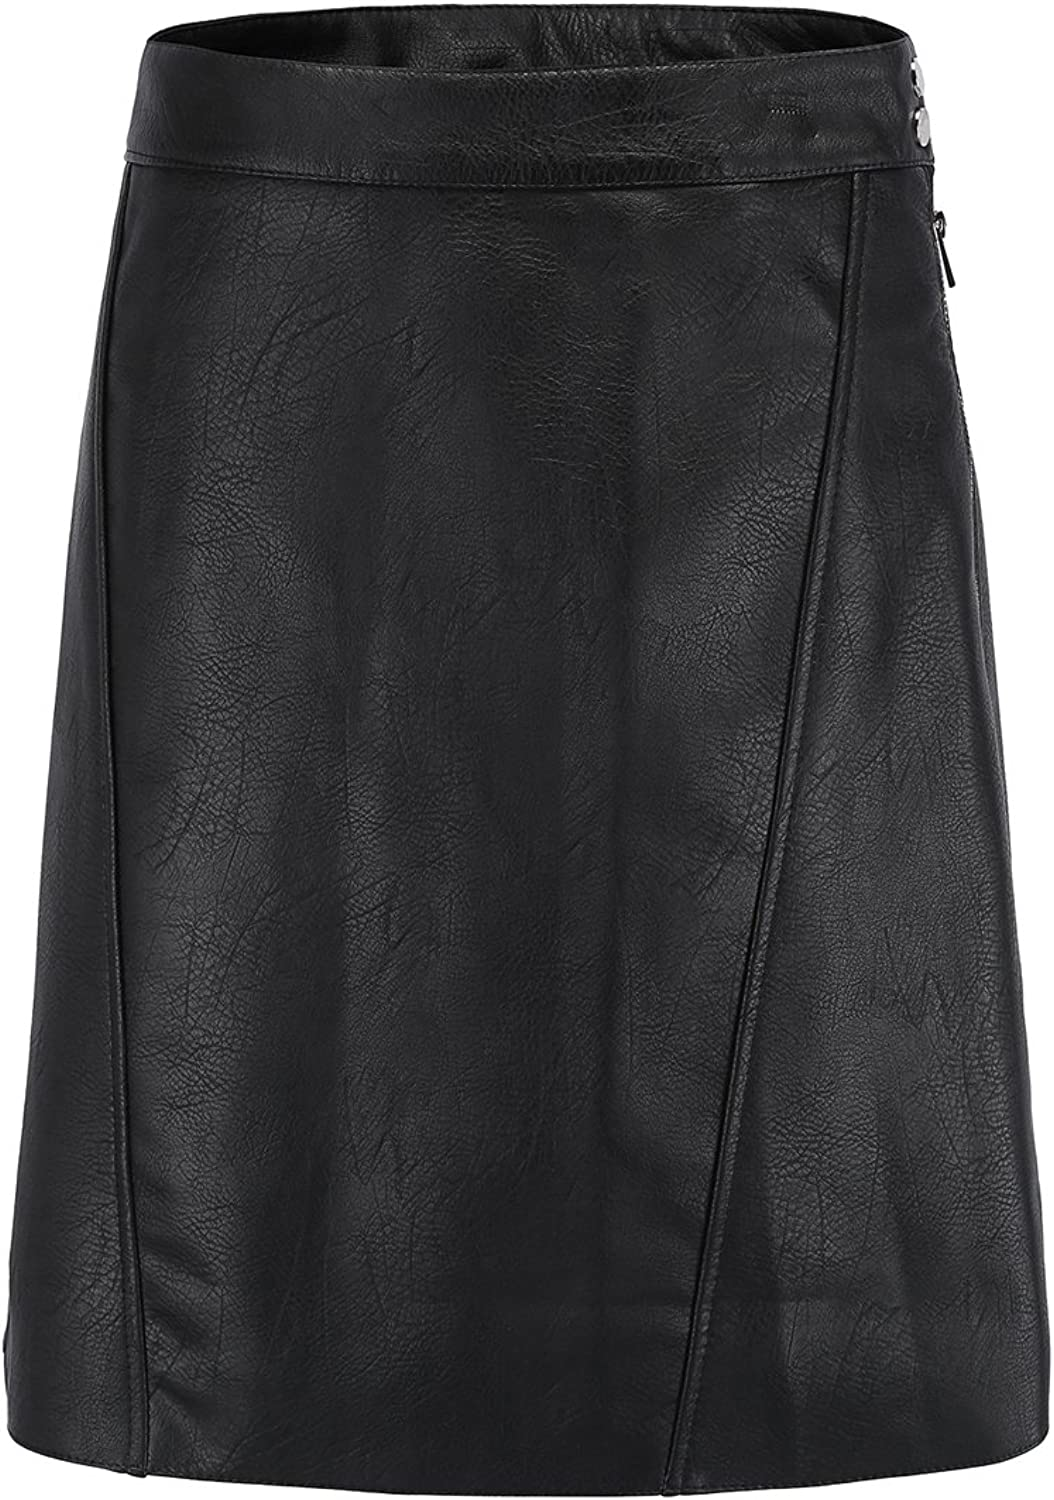 Alcea pinka Women's Faux Leather PU Skirt with Zipper and Button